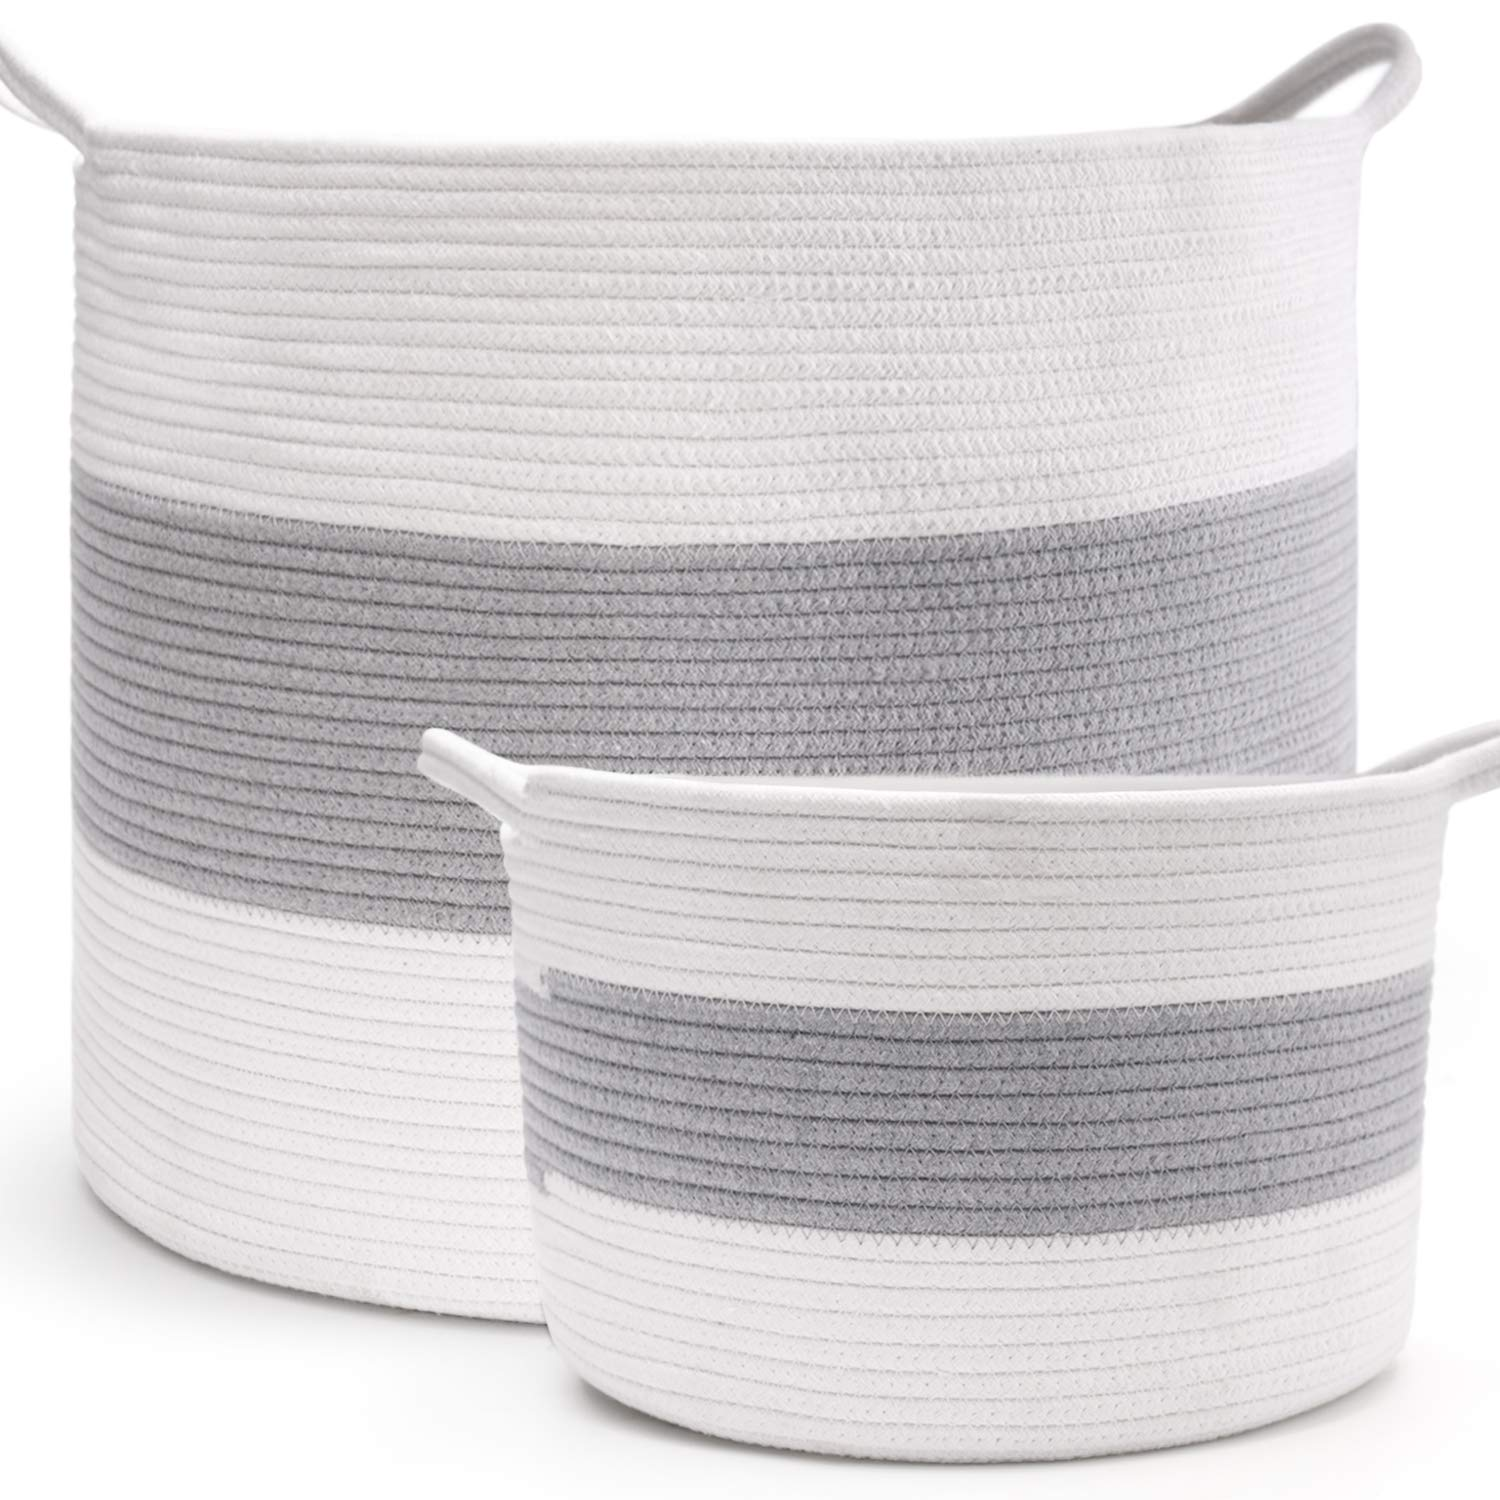 HAN-MM XXXL Extra Large Storage Baskets, 2PCS Laundry Baskets, Blanket Basket Cotton Rope Set (Large Size 20''X16'' Small Size 12''x8'') -Woven Baskets with Carry Handles for Towel,Toys Grey and Off-White by HAN-MM